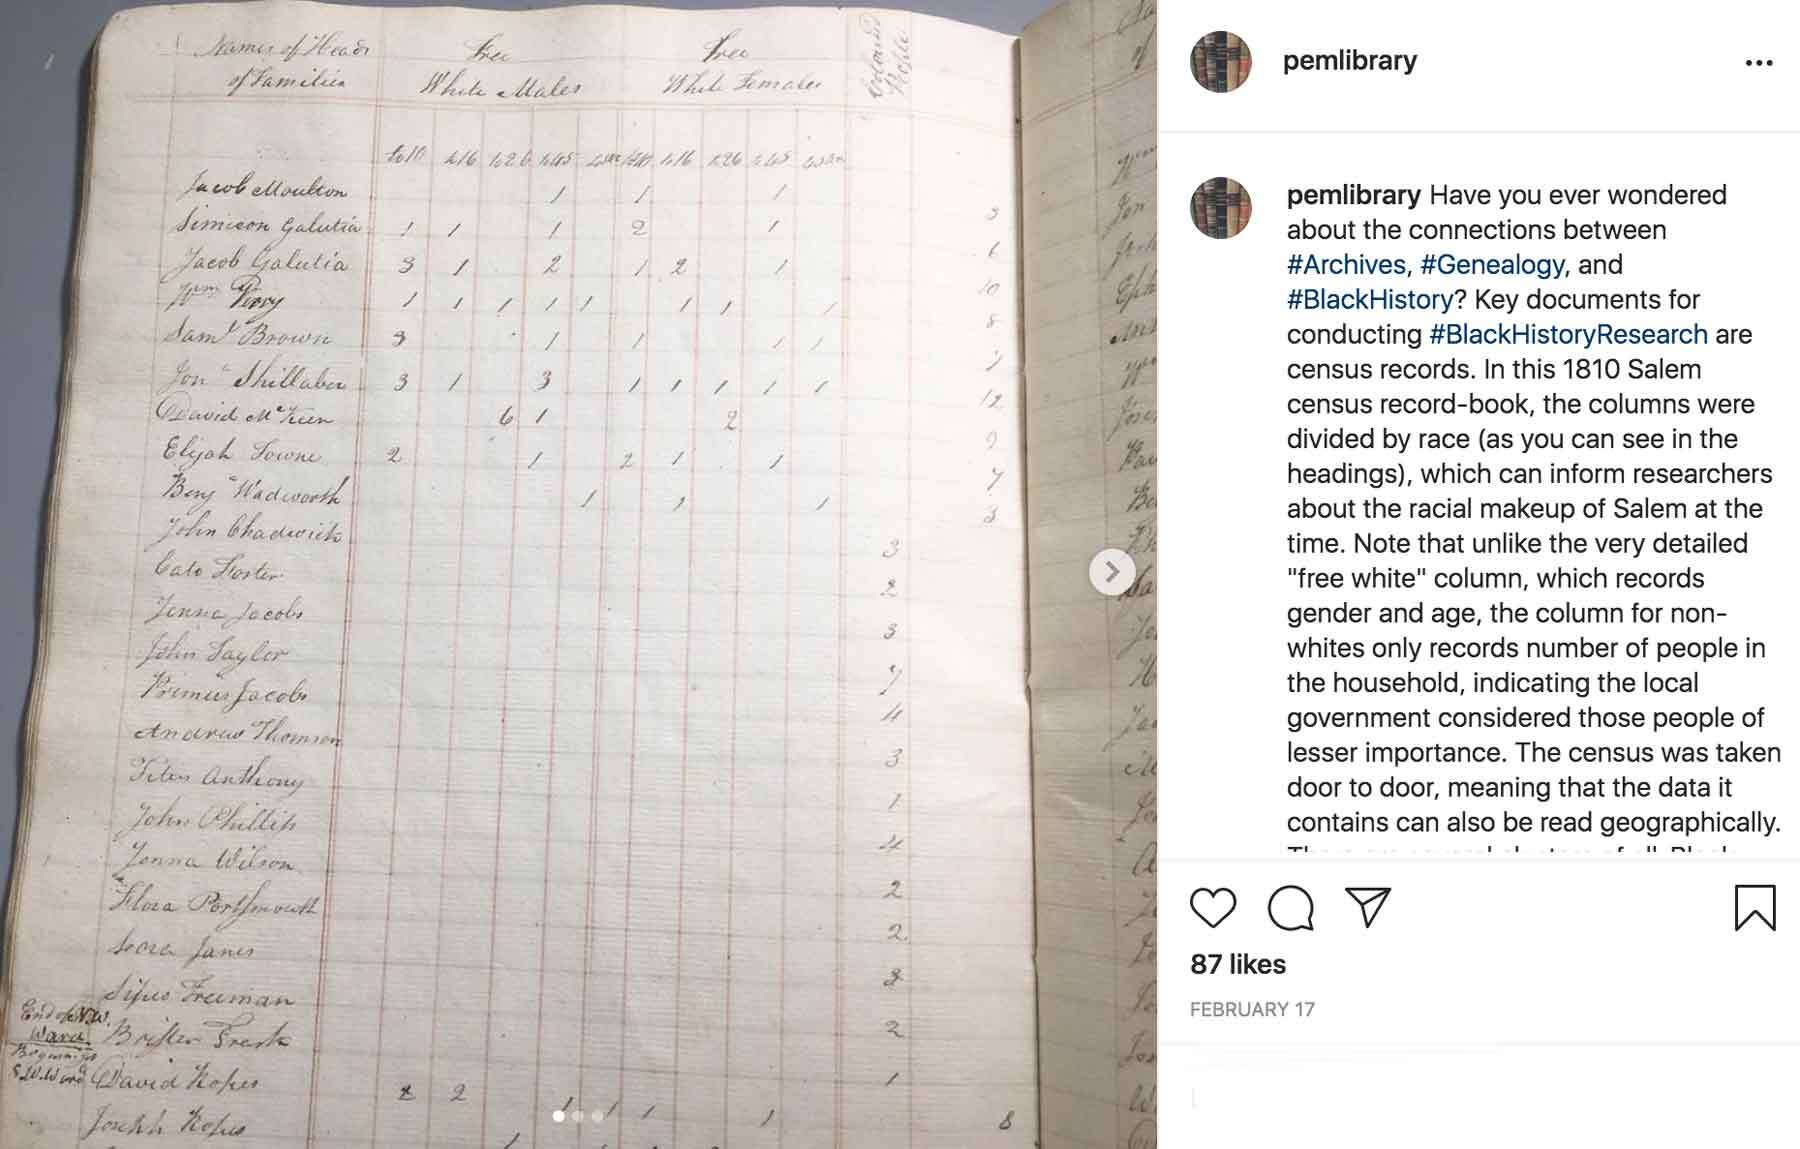 Instagram image of the 1810 census page in a book